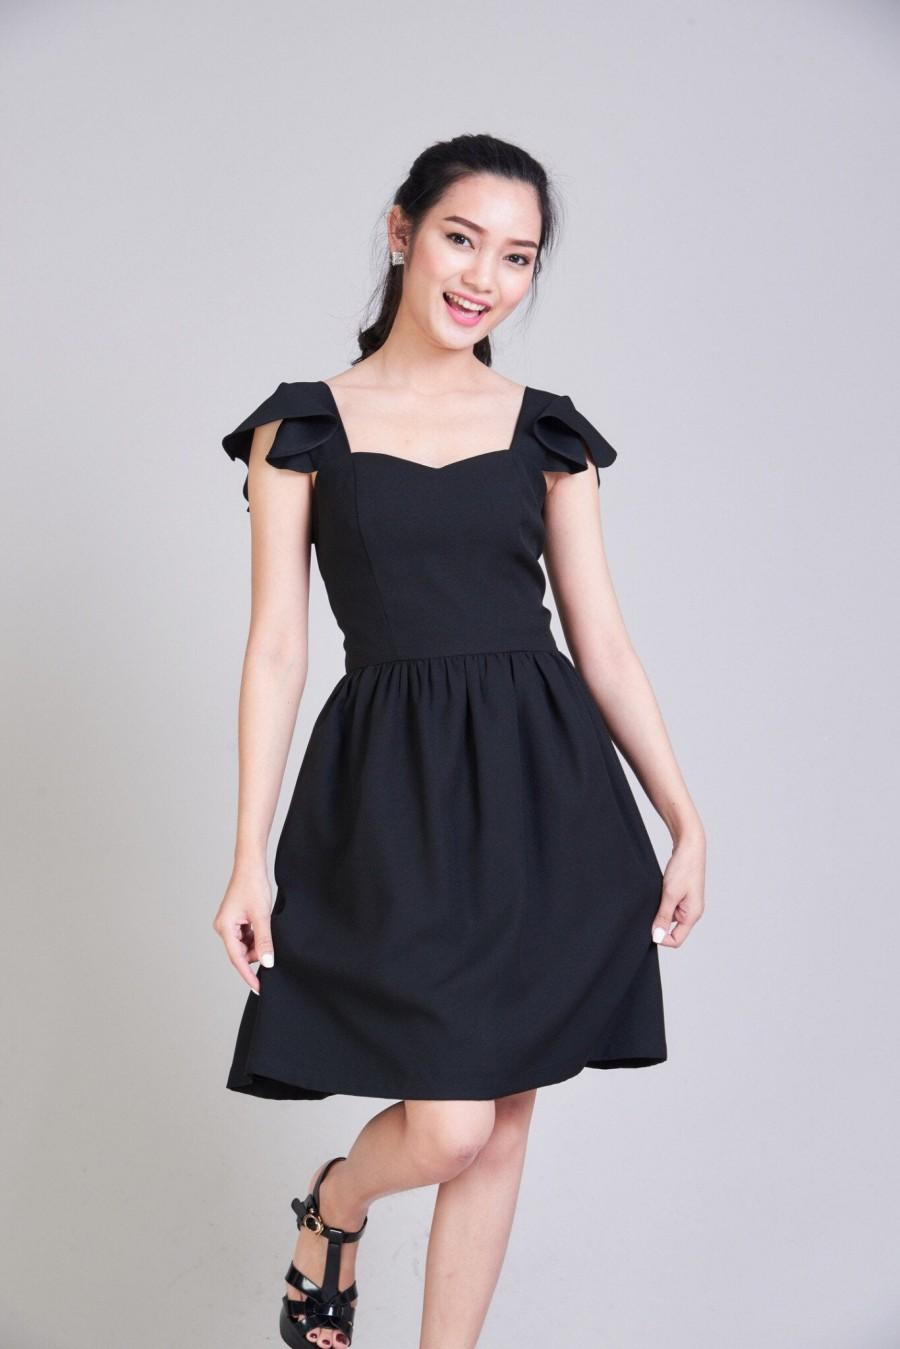 Mariage - Olivia - Black Bridesmaid Dress Little Black Dress Ruffle Sleeve Summer Dress Vintage Inspired Swing Dance Dress Formal Dress